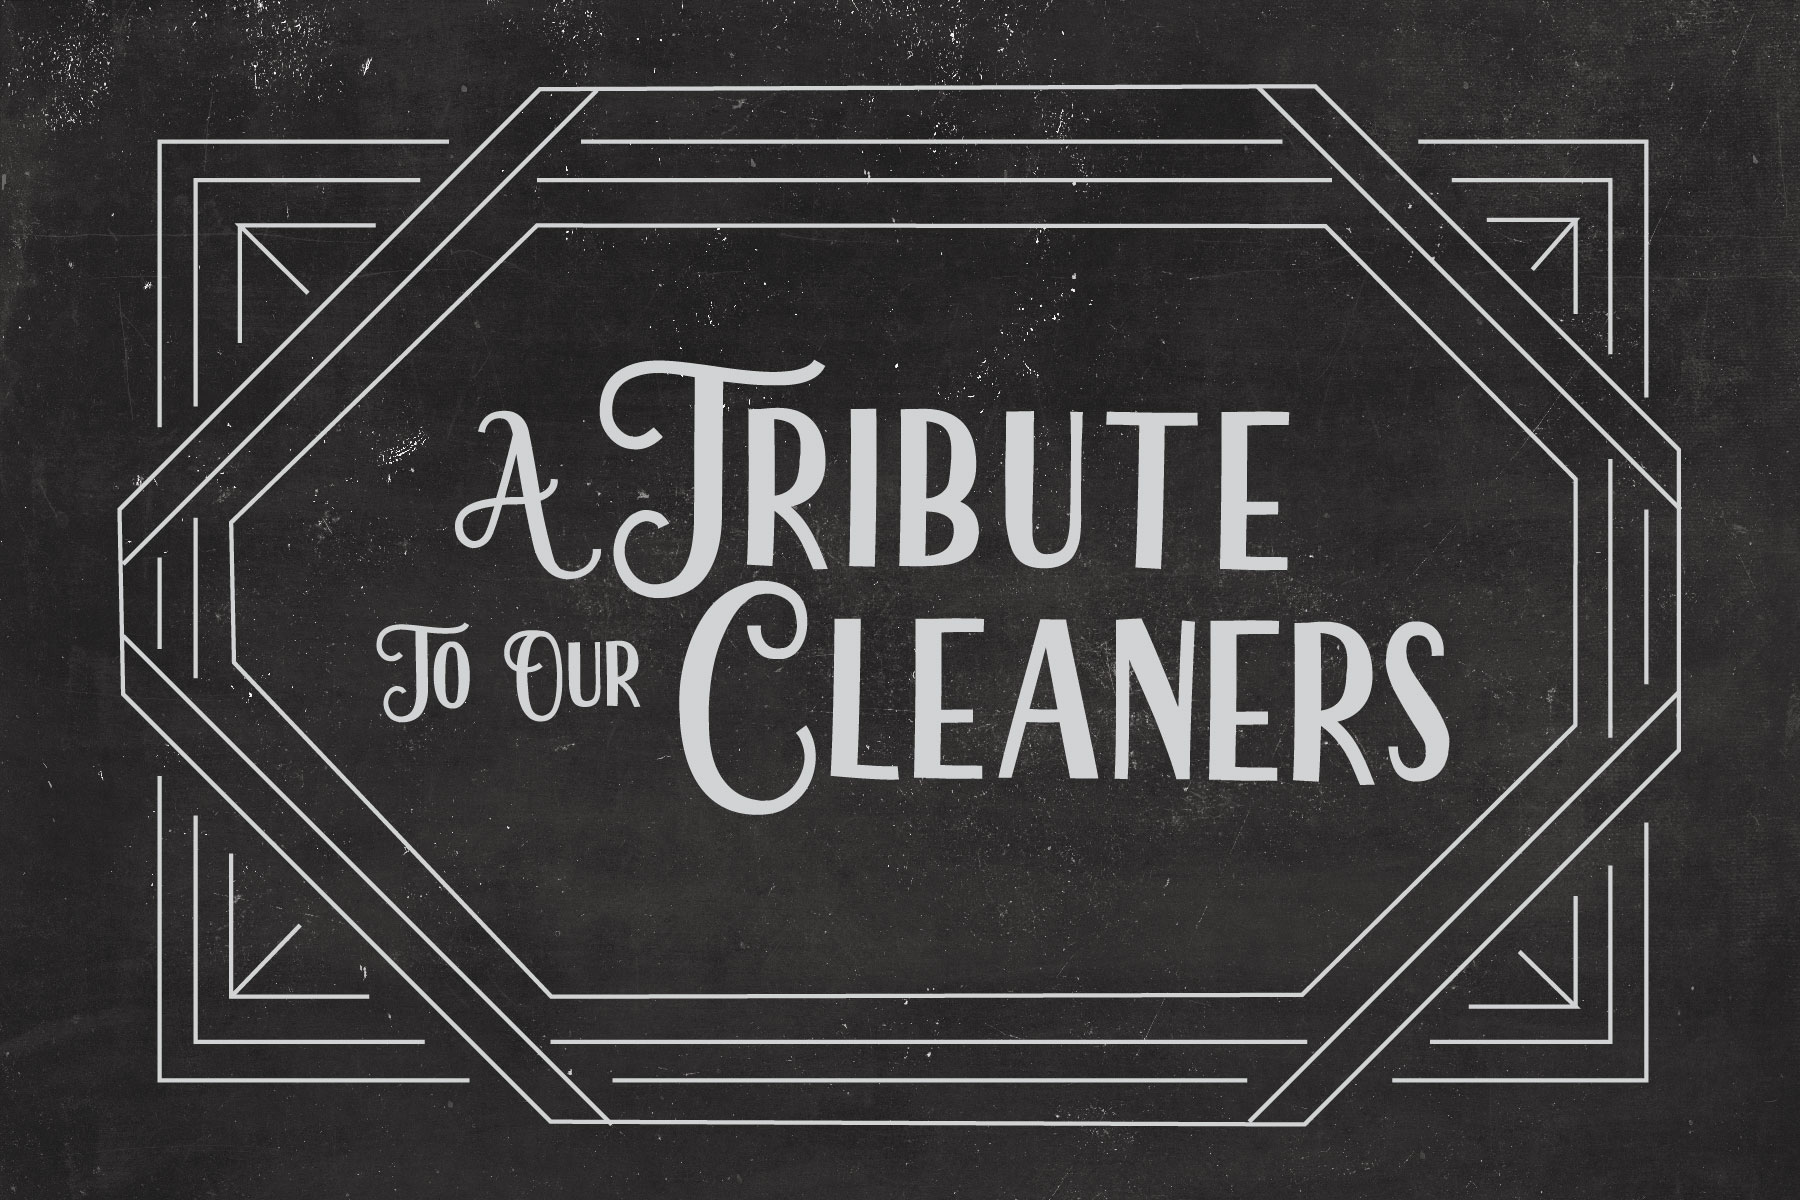 A Tribute To Our Cleaners